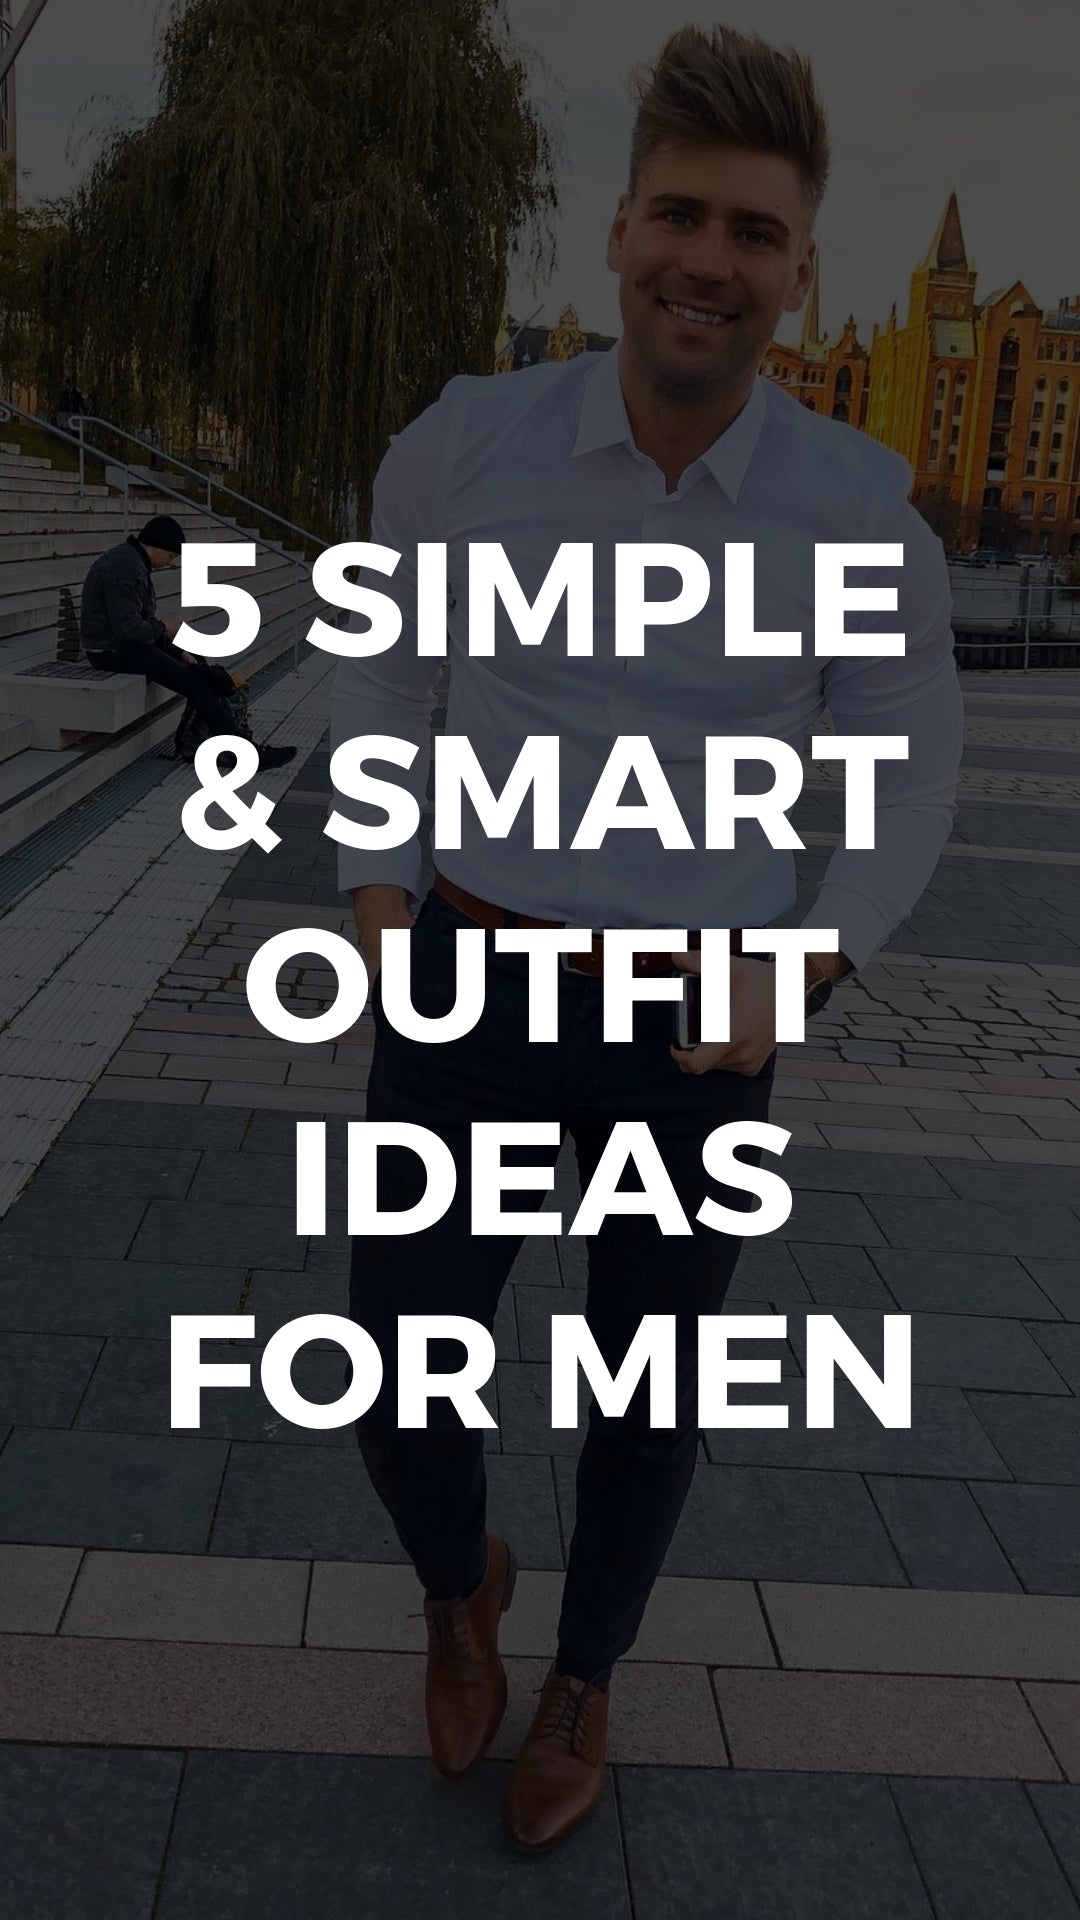 5 Simple Outfits You Can Wear On Repeat #simple #outfits #mensfashion #streetstyle